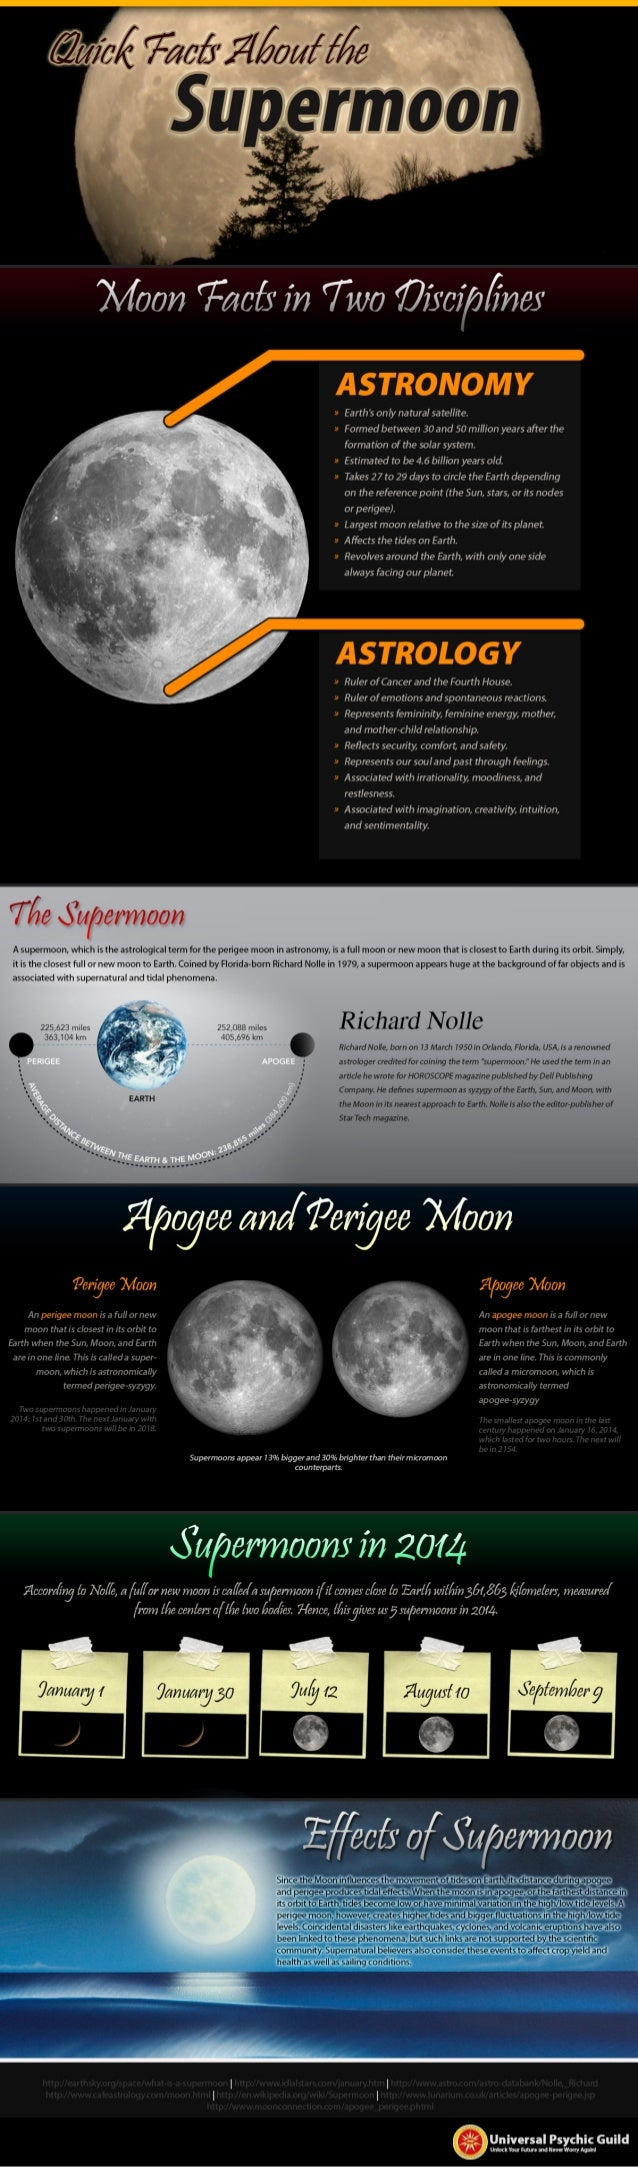 Quick facts about the supermoon